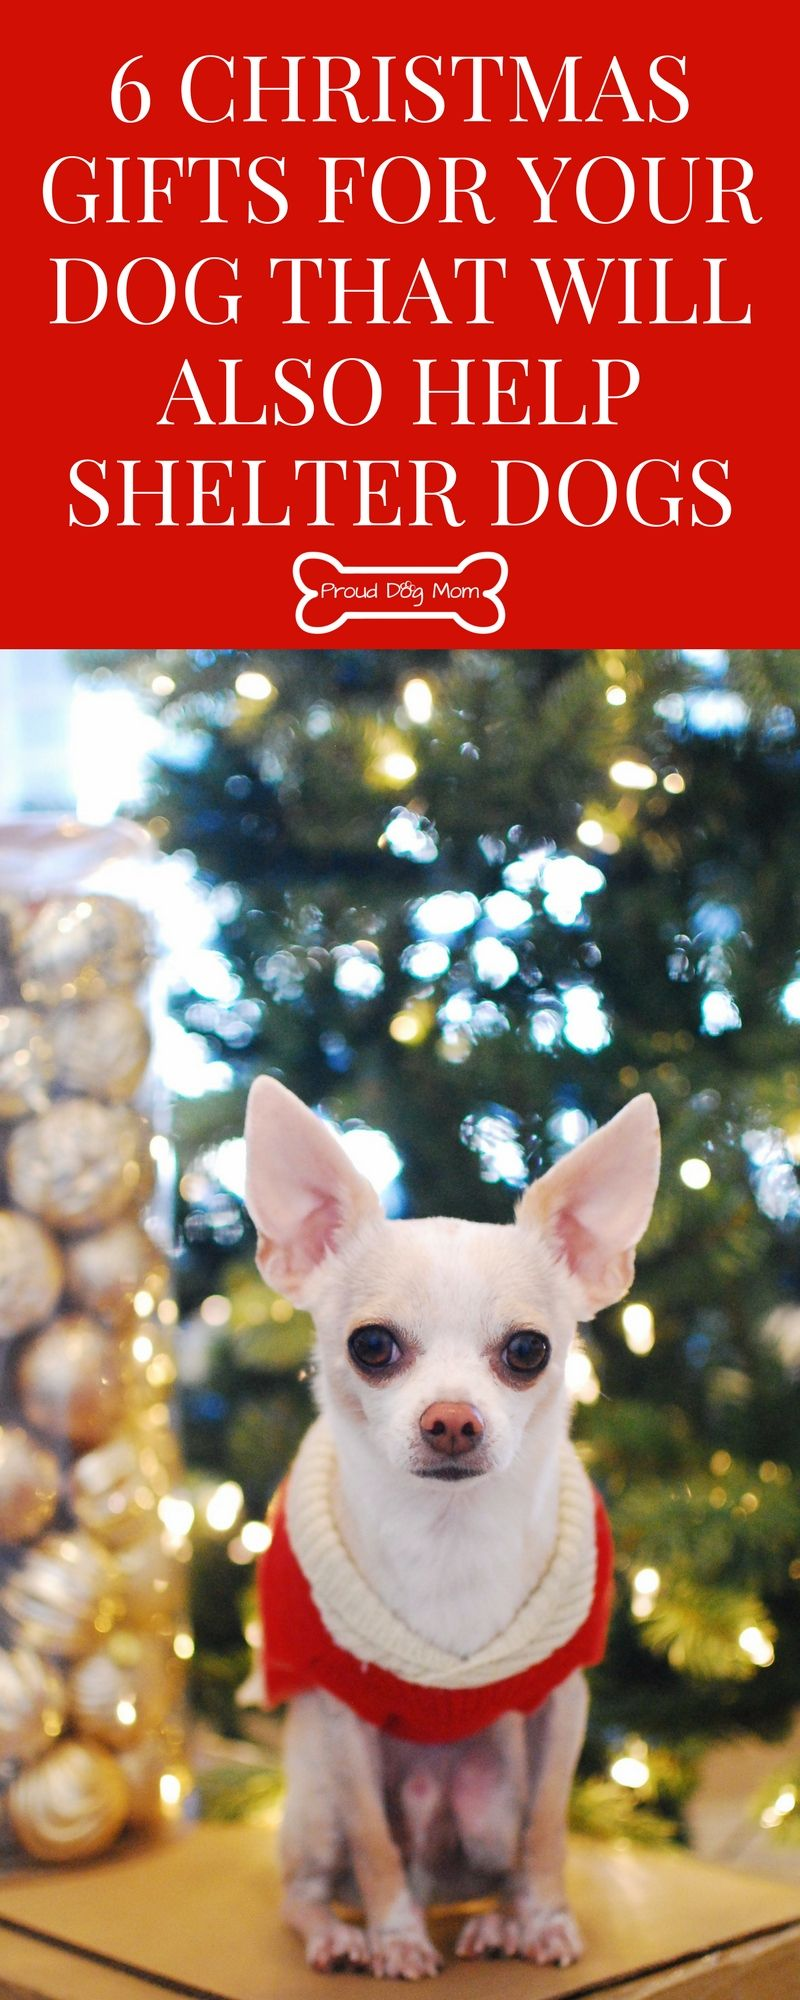 6 Christmas Gifts For Your Dog That Will Also Help Shelter Dogs ...